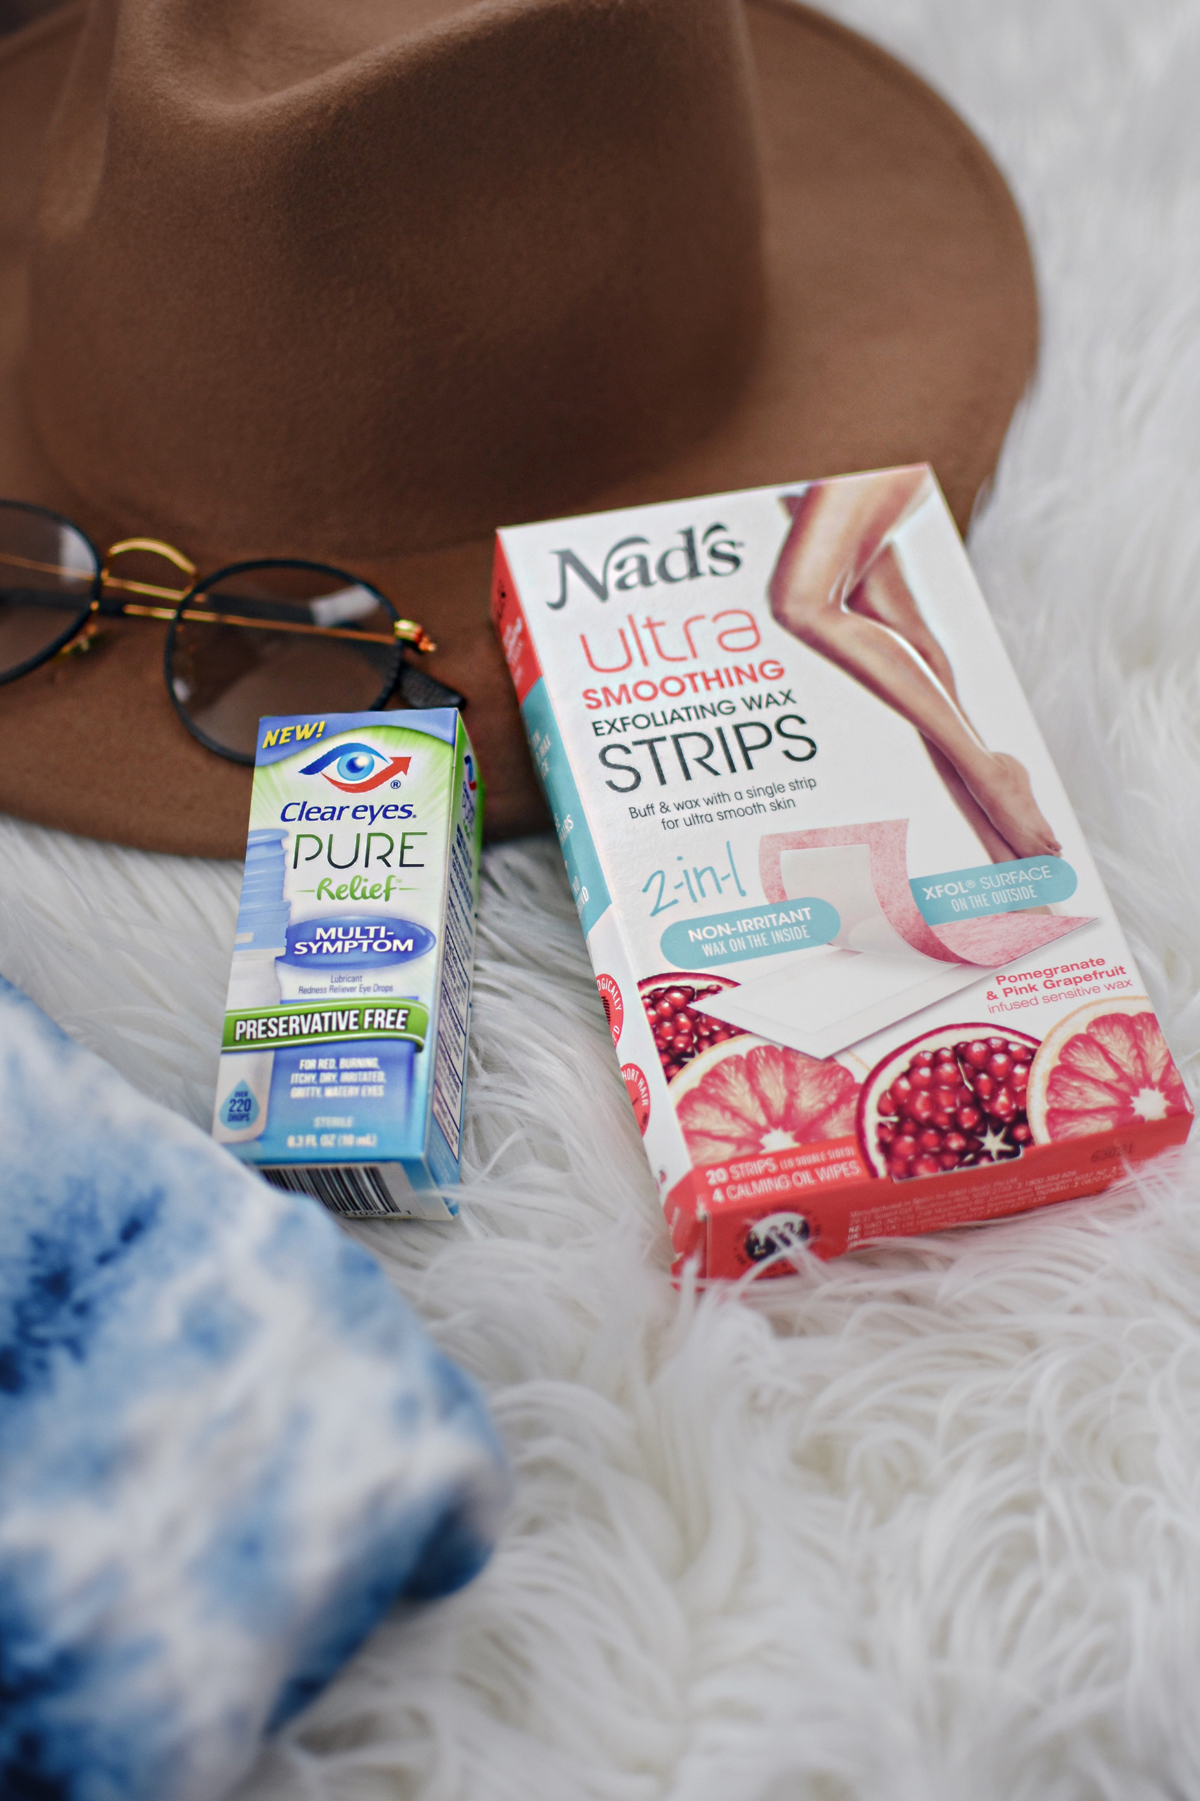 Nad's ultra smoothing wax strips